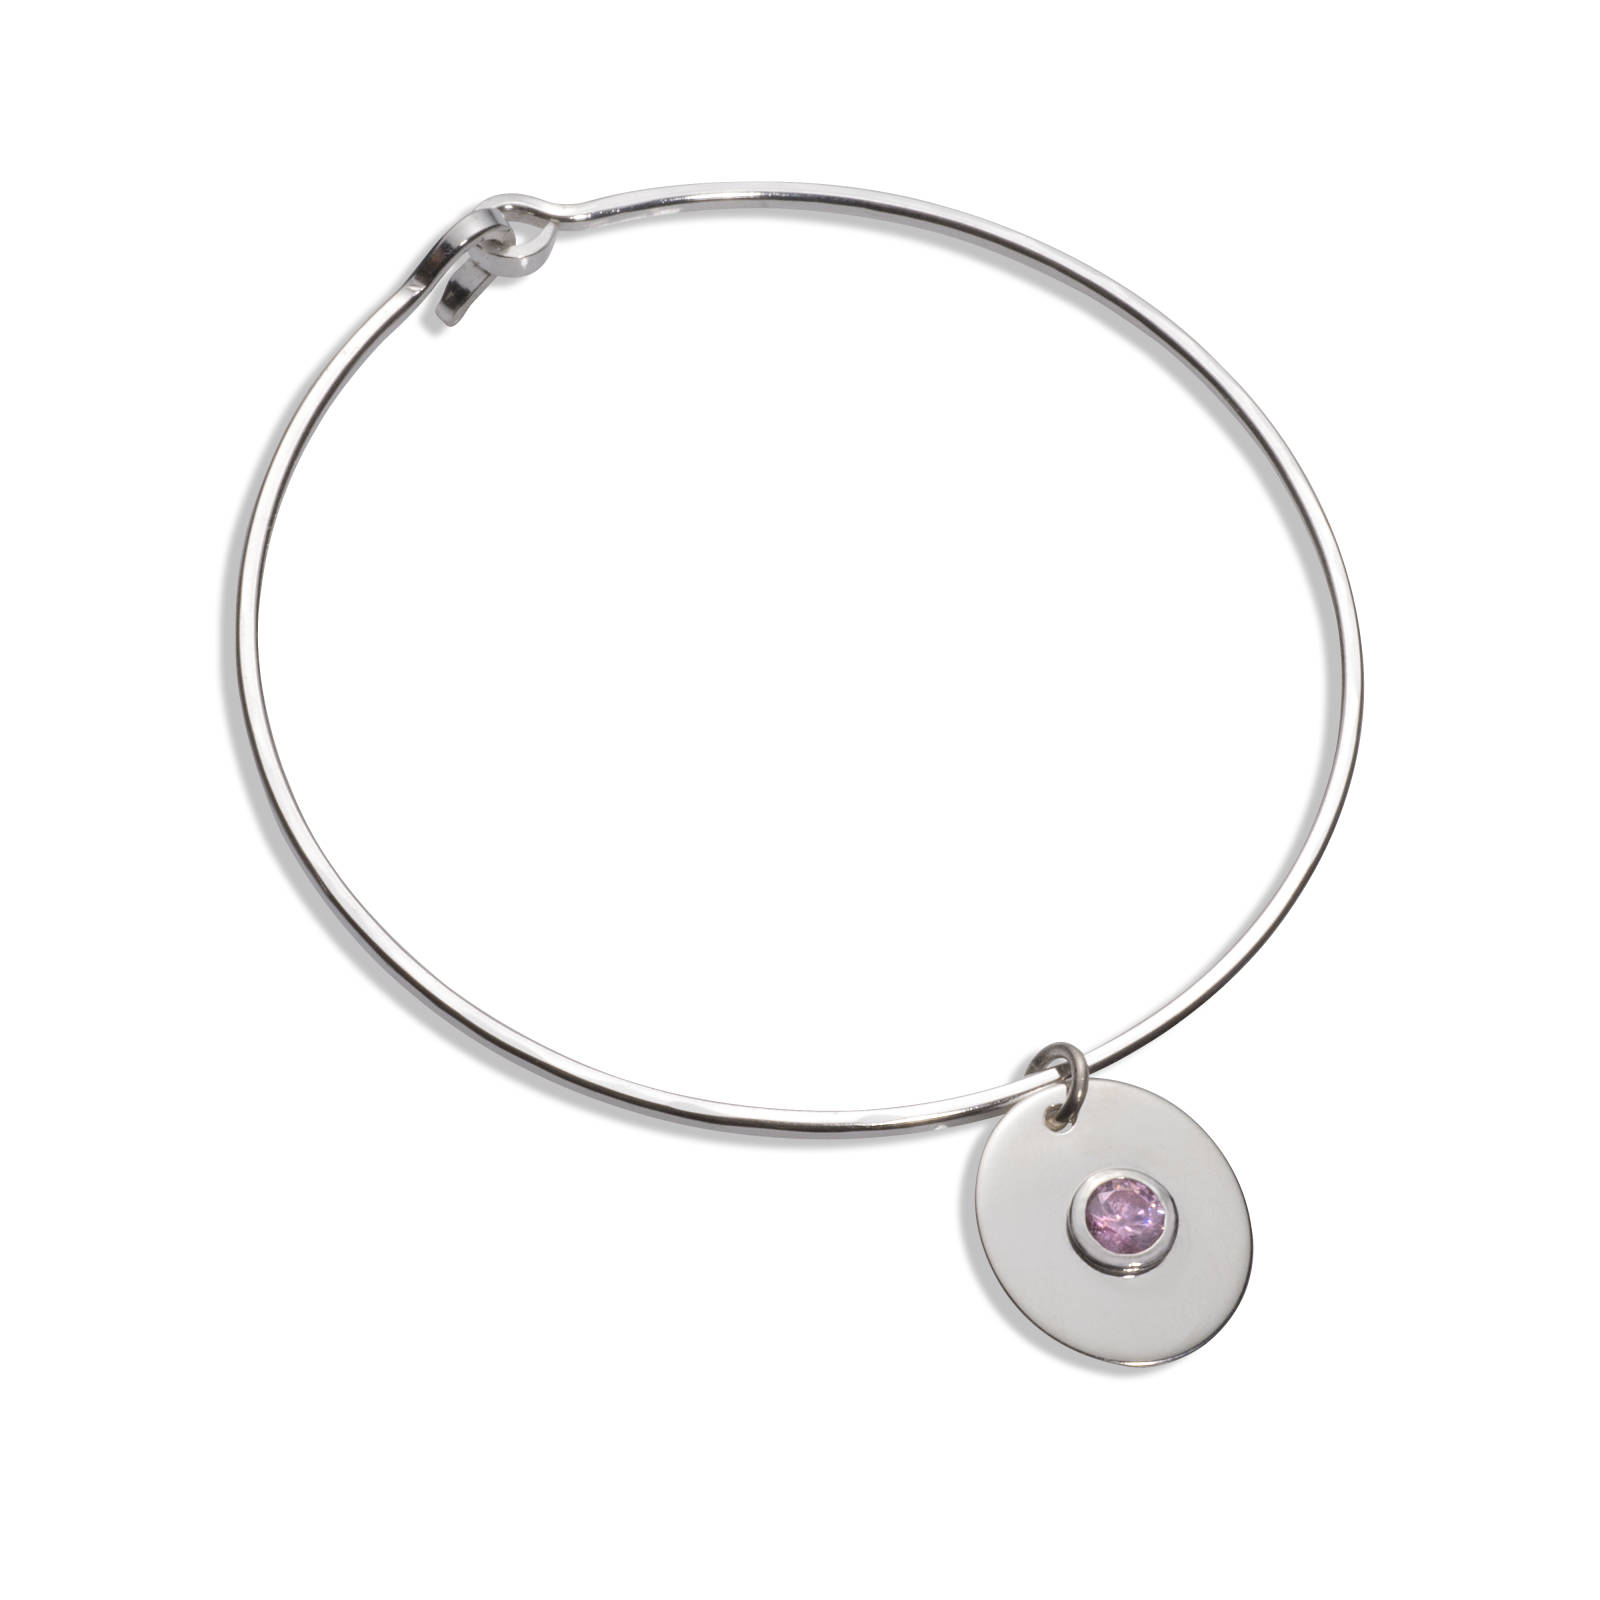 bangle pandora mall charm silver bangles bracelet sterling of